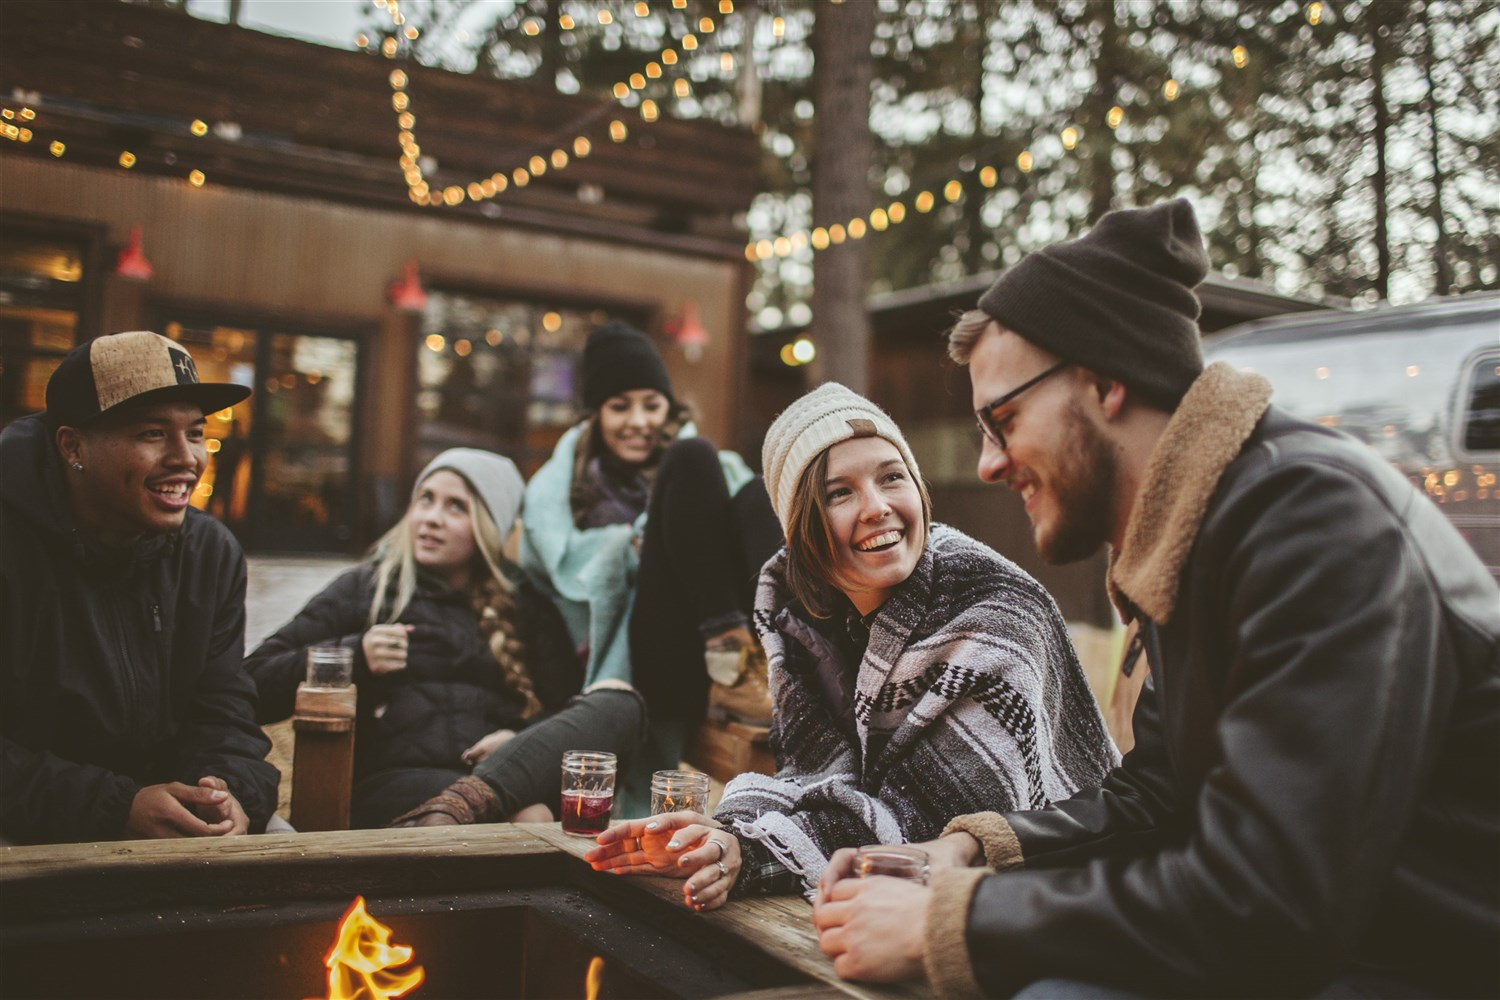 Après-ski in Tahoe is its own breed of fun, and we like it a lot. In South Lake Tahoe and Stateline, so many good spots are located in strip malls and older buildings that you often have to look beyond the surface appearance of businesses to find the good spots. It's well worth it!  Courtesy Vail Resorts